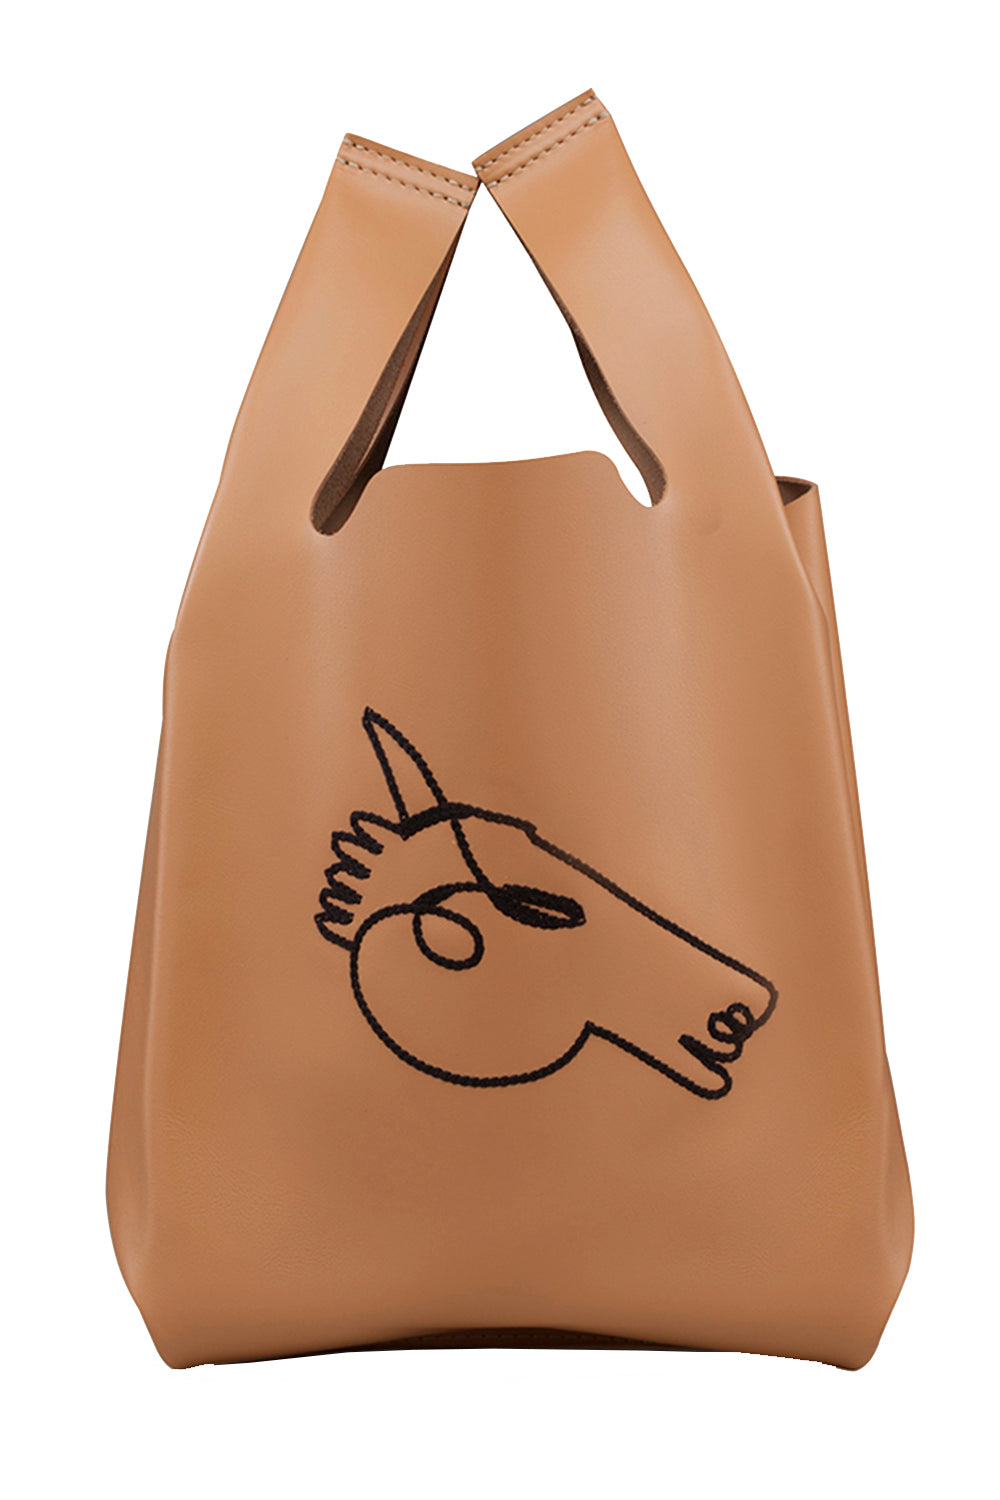 Xala Stitch Bag in Camel